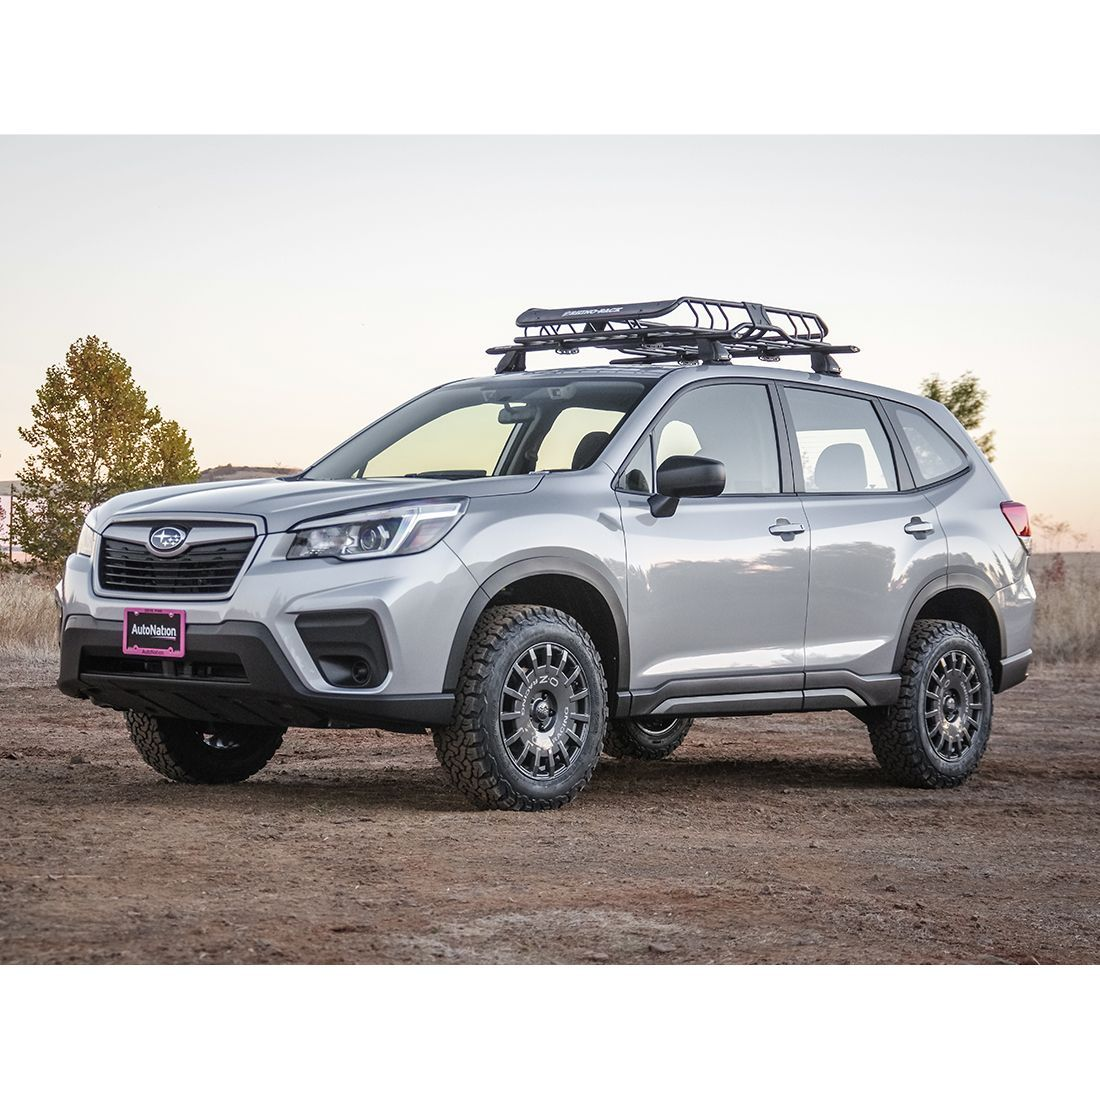 2.0'' SST Lift Kit Subaru Forester 20192020 in 2020